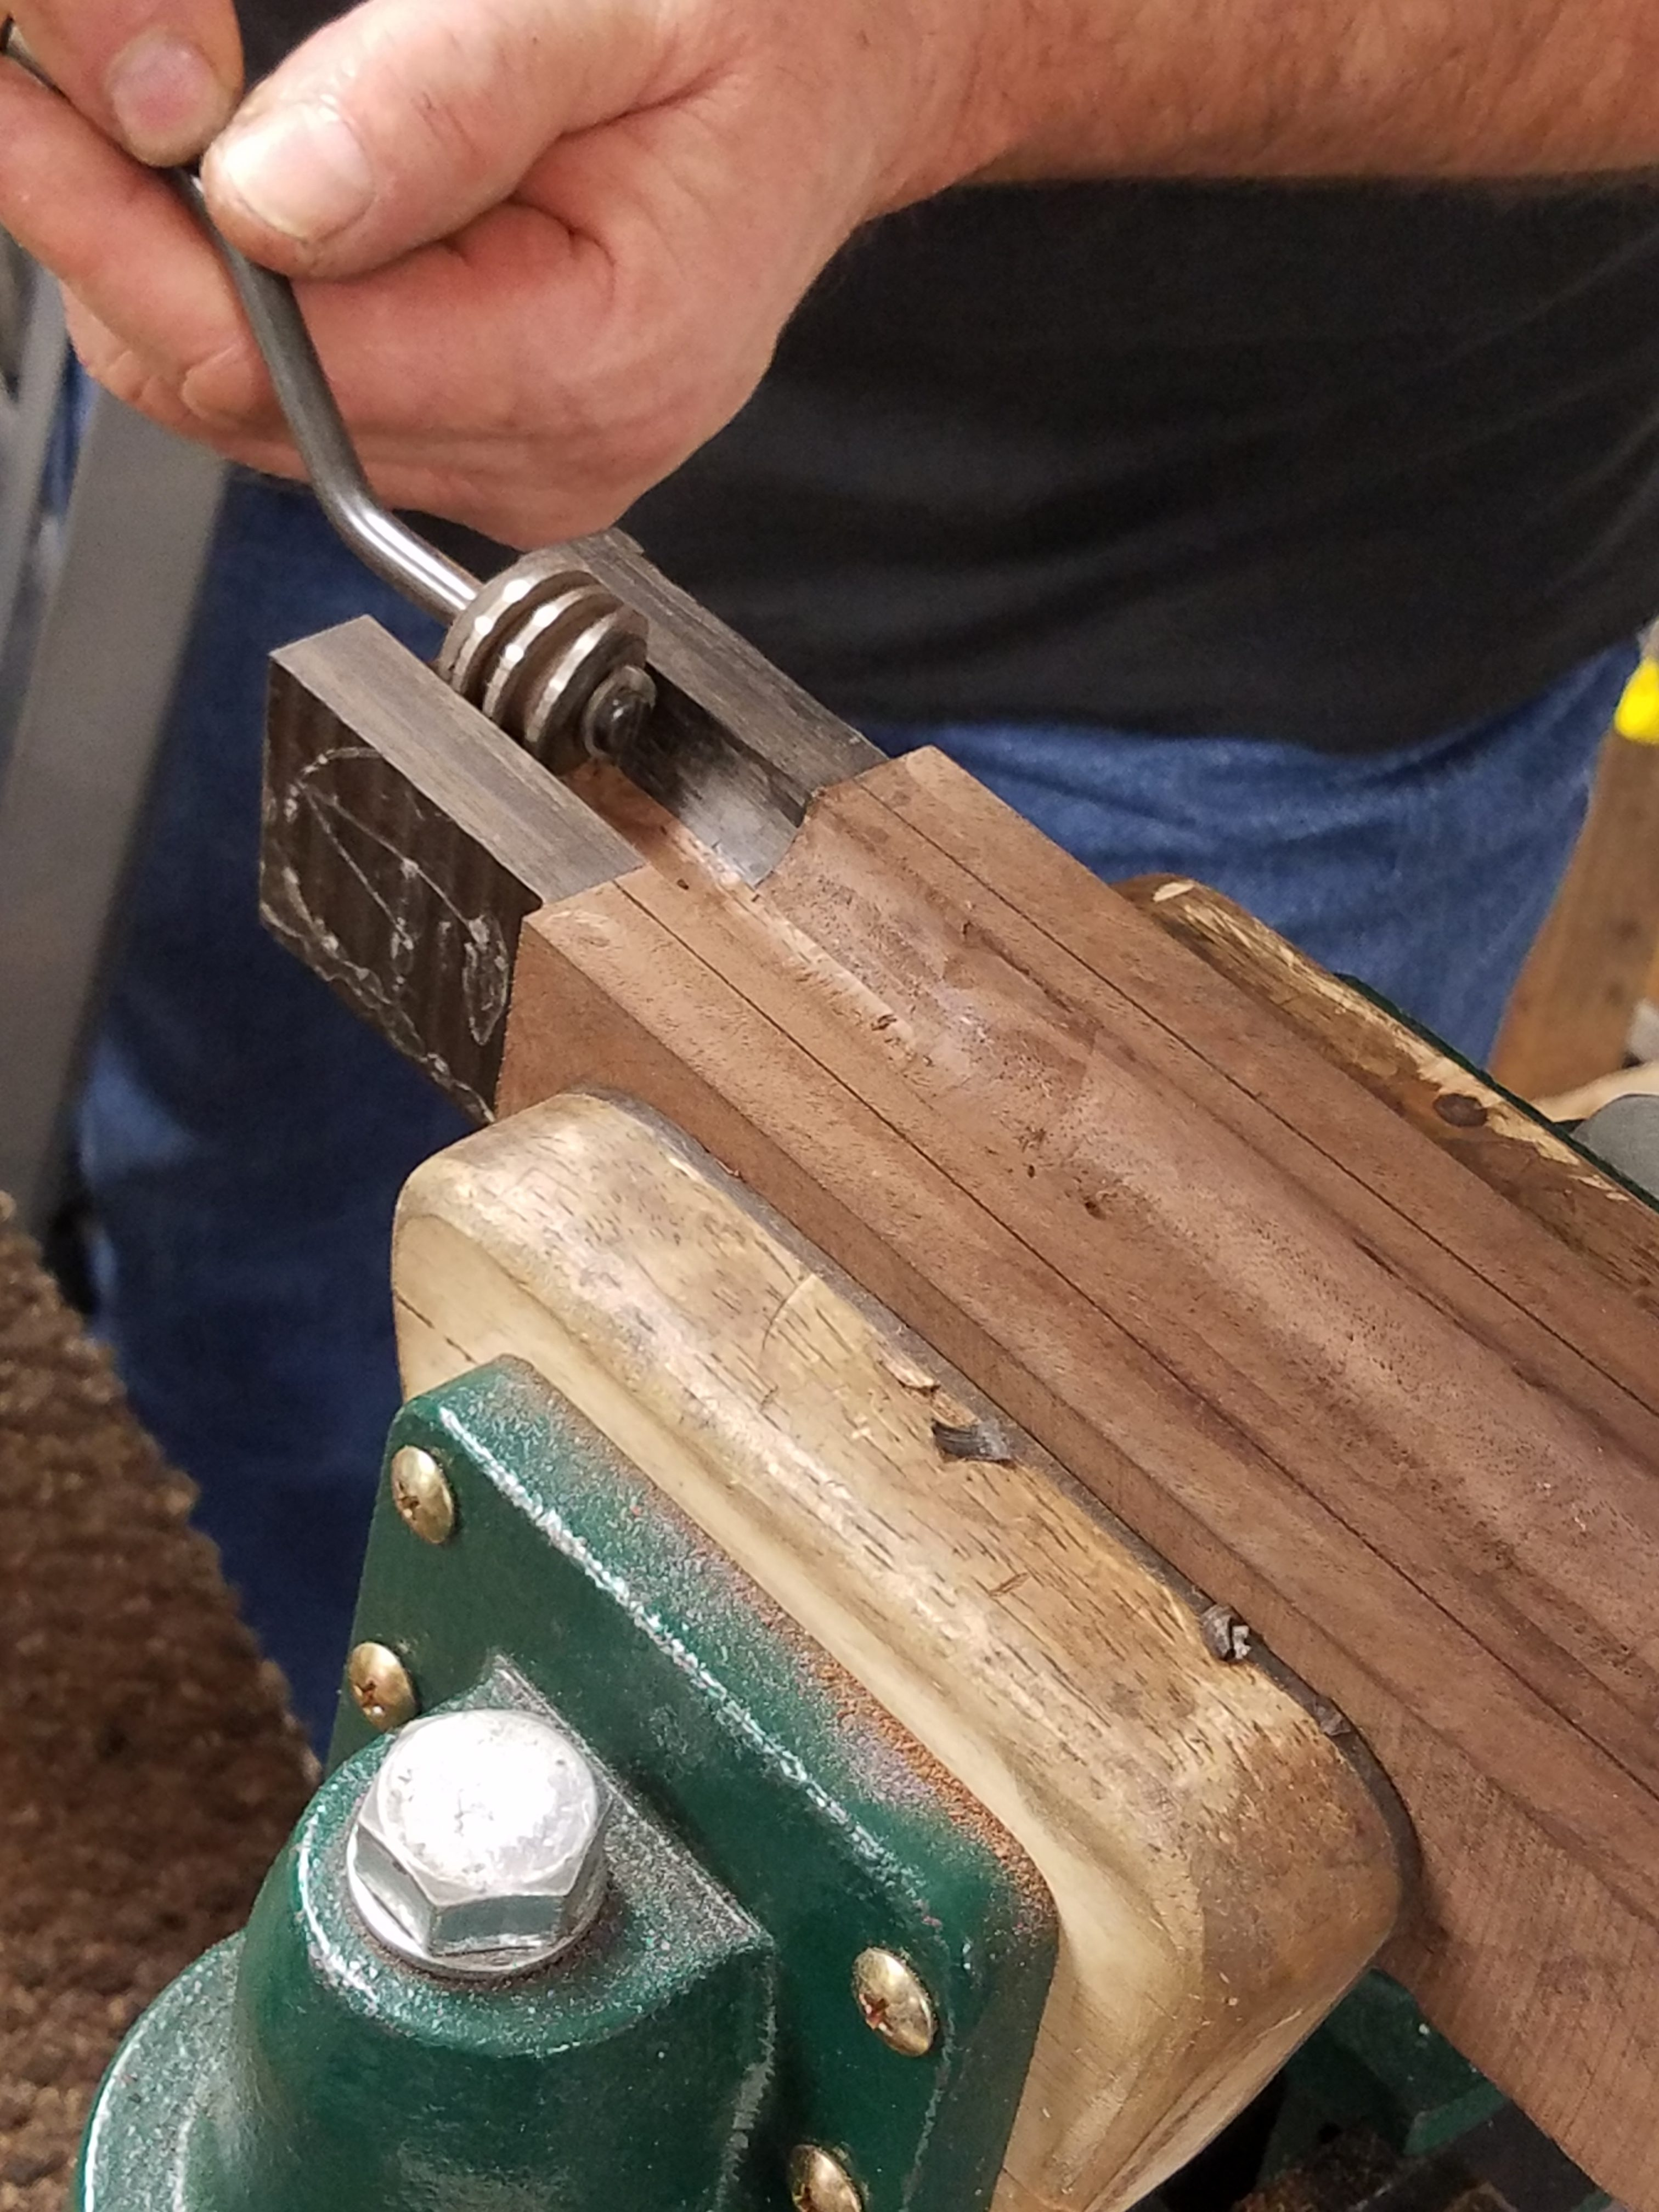 Barrel bedding tool for shotguns